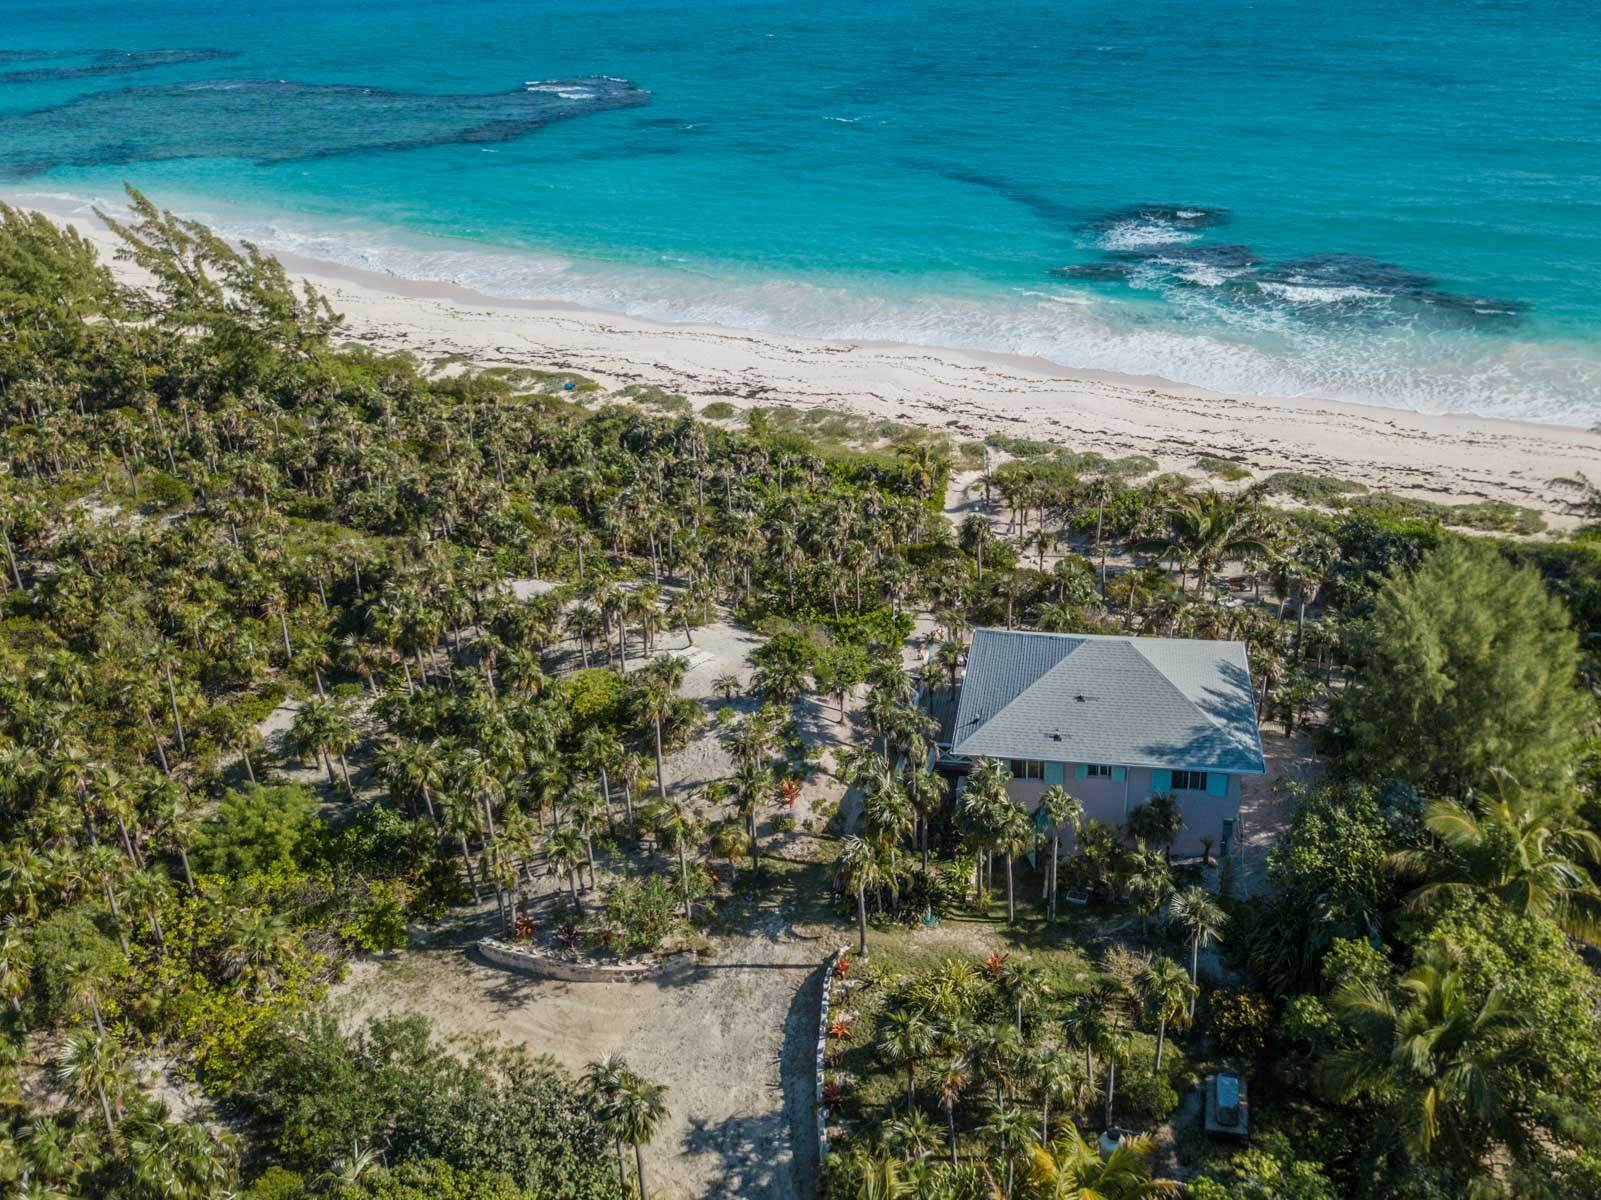 Single Family Homes for Sale at Amaranth on Double Bay, Eleuthera - MLS 41458 Double Bay, Eleuthera, Bahamas